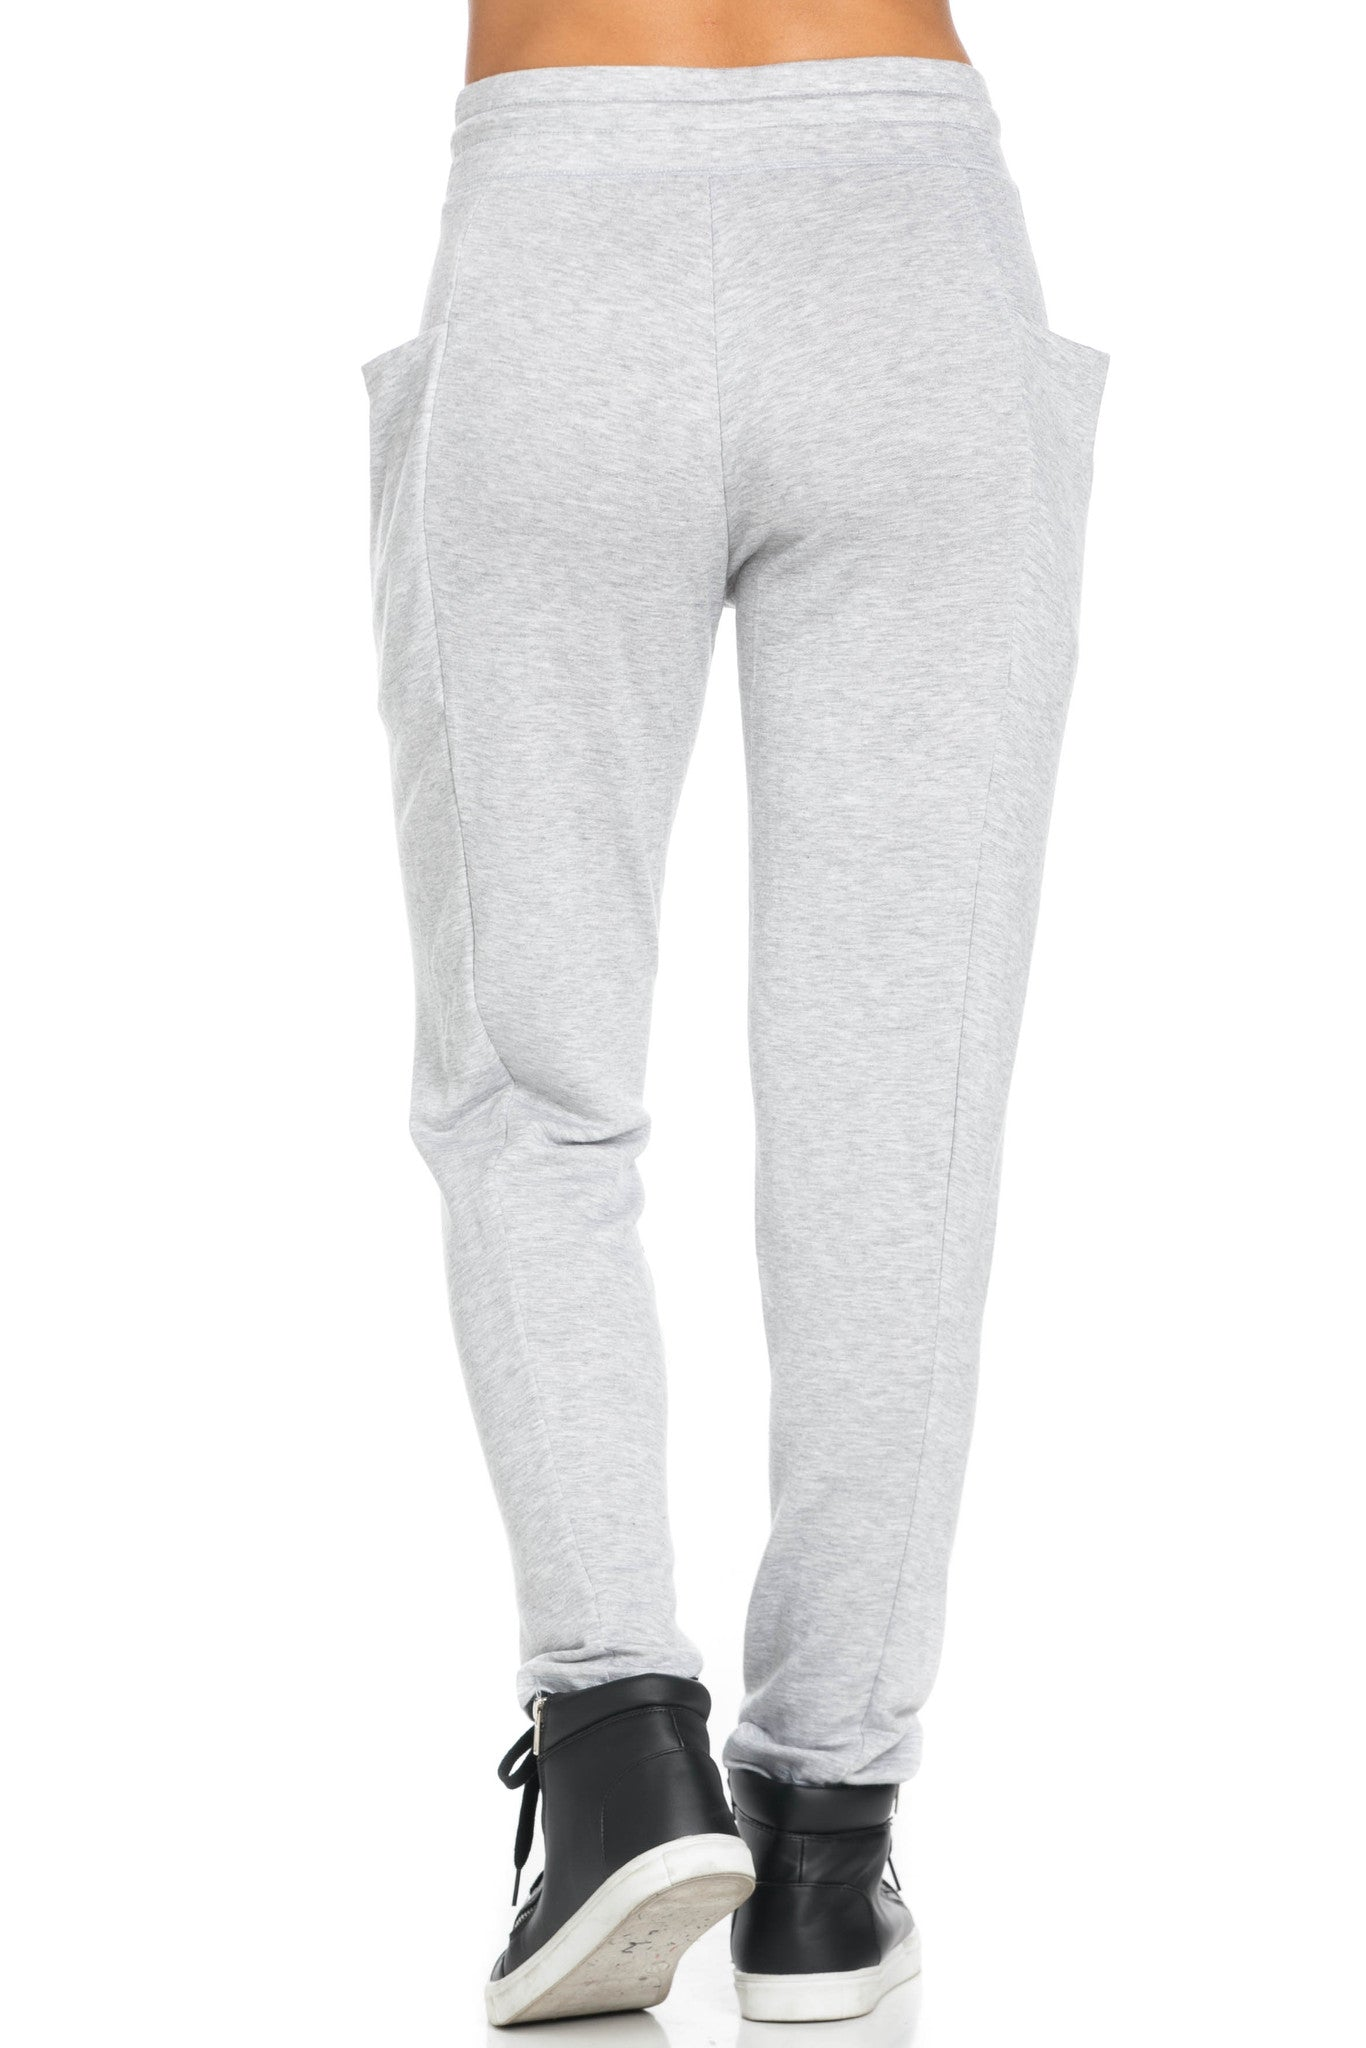 Heather Grey Harem Pants - Pants - My Yuccie - 6